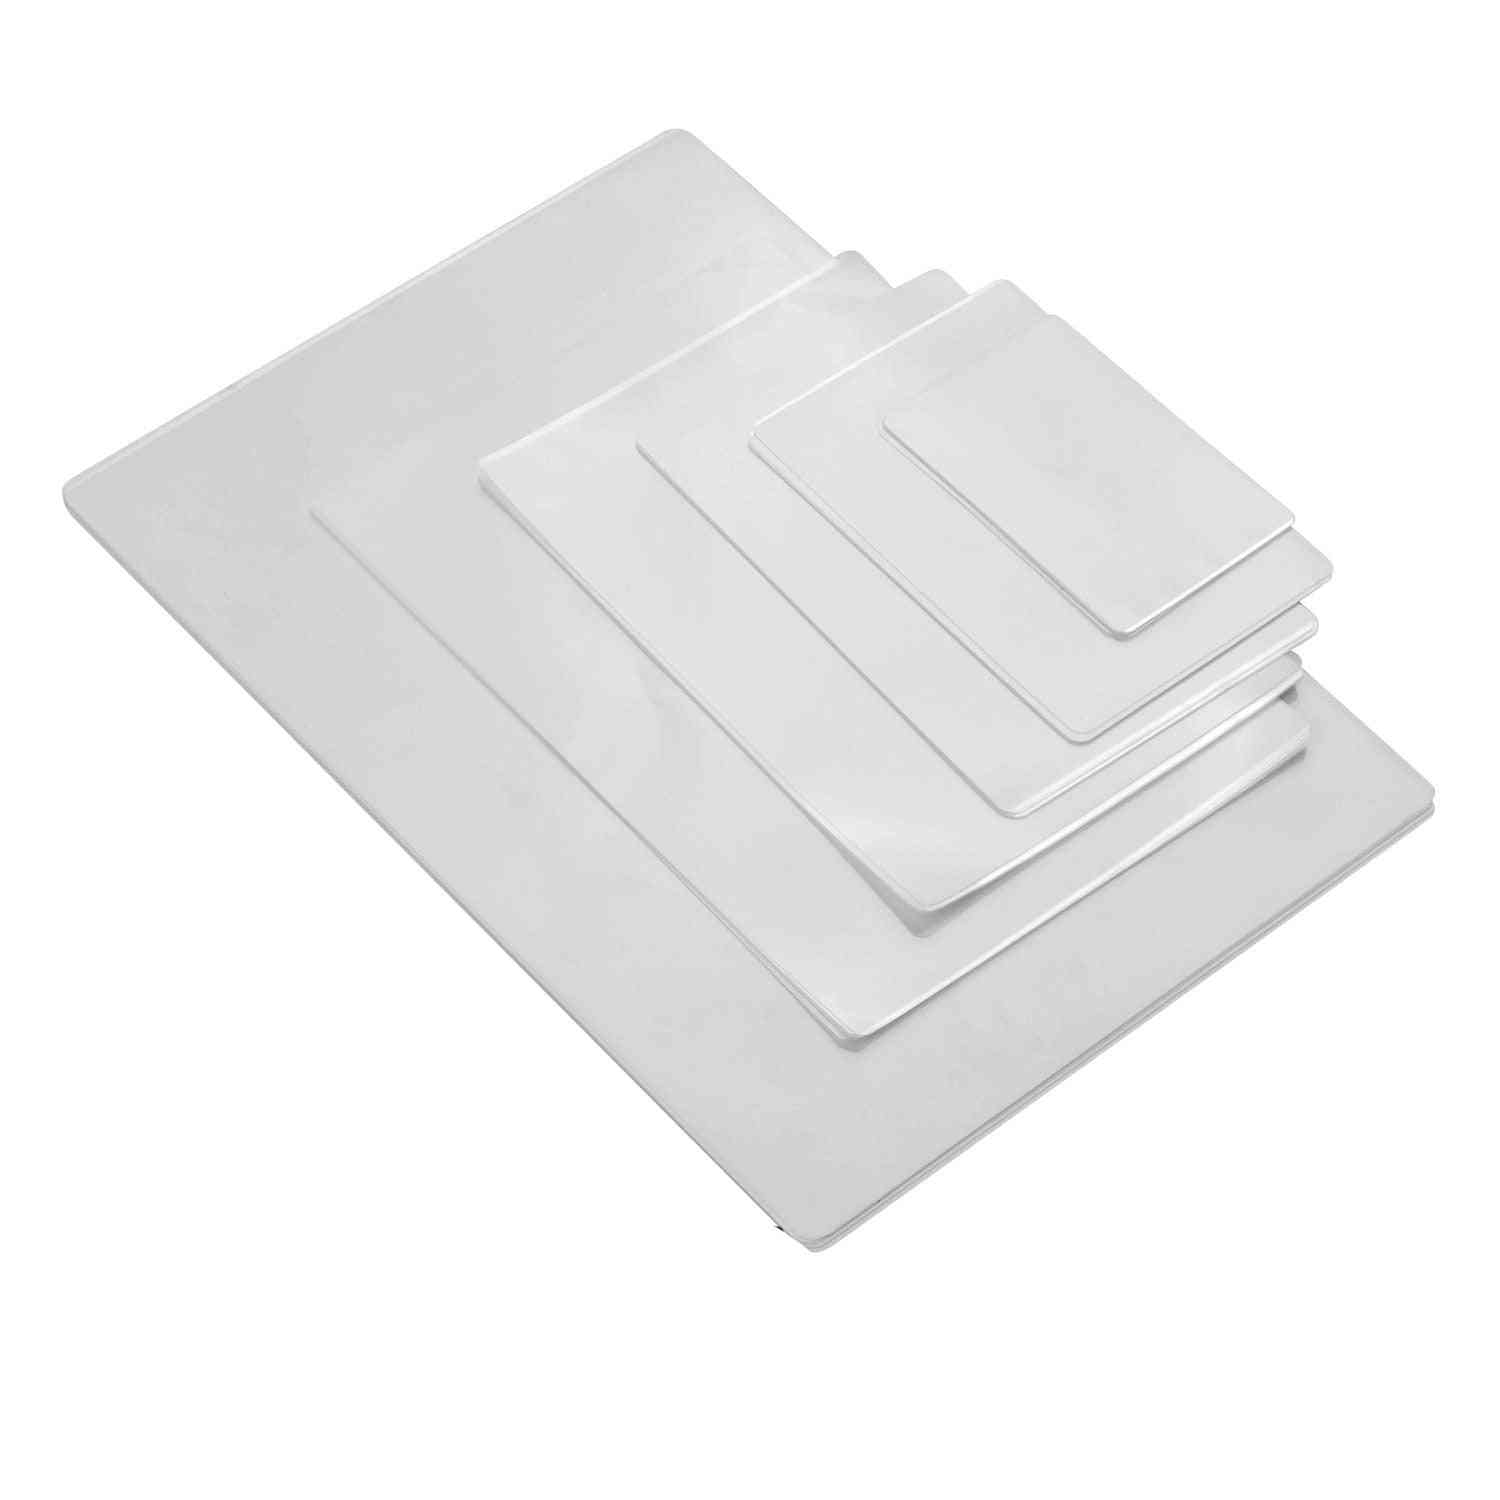 80mic Thermal Laminating Film Pouches Pet Clear Sheet